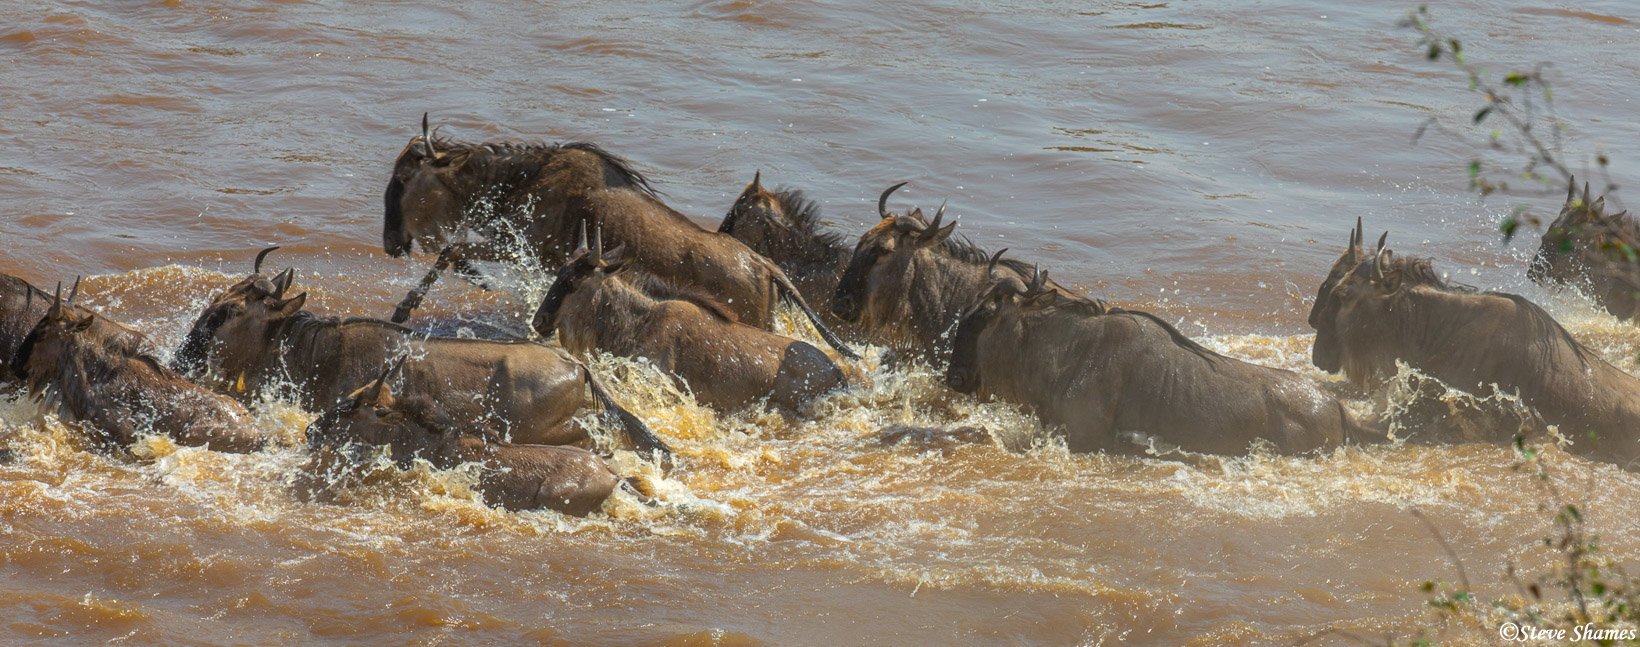 """One way to describe wildebeest crossing the Mara River is """"pandemonium"""" Which is defined as - wild and noisy disorder or confusion..."""